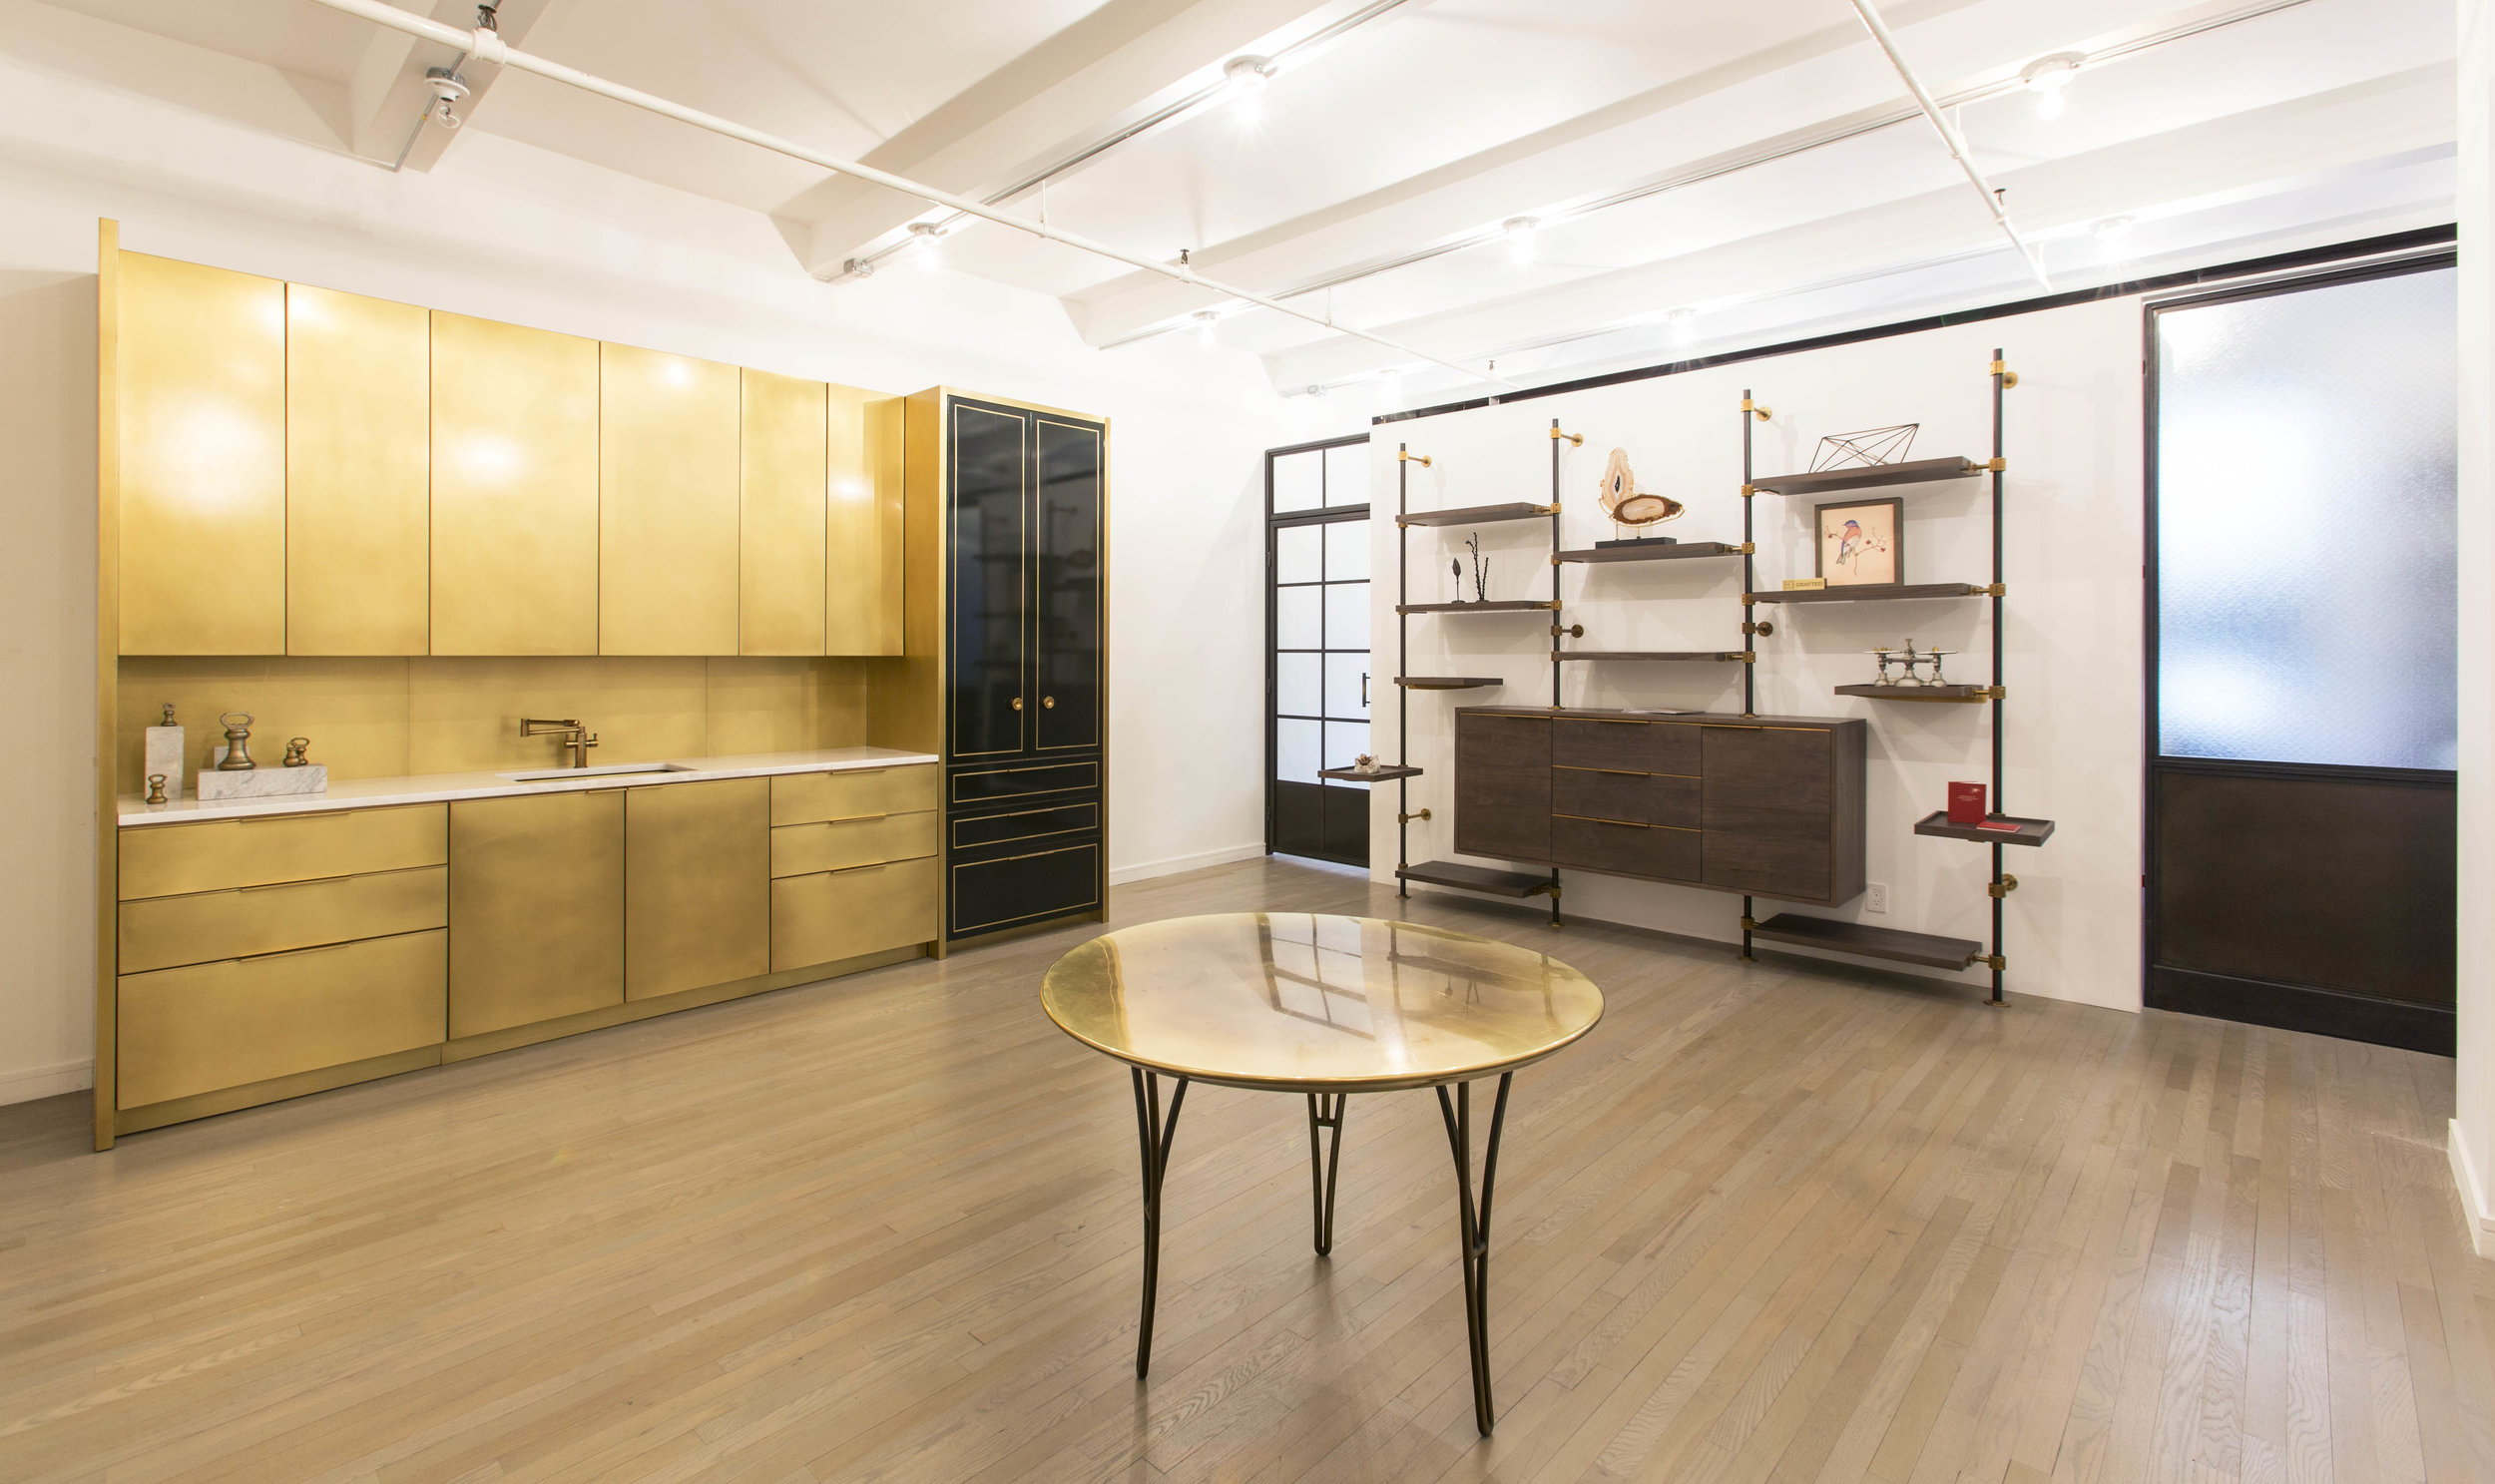 OFFICE Brass Kitchen and Bridge Unit amuneal_nycshowroom_0326.jpg